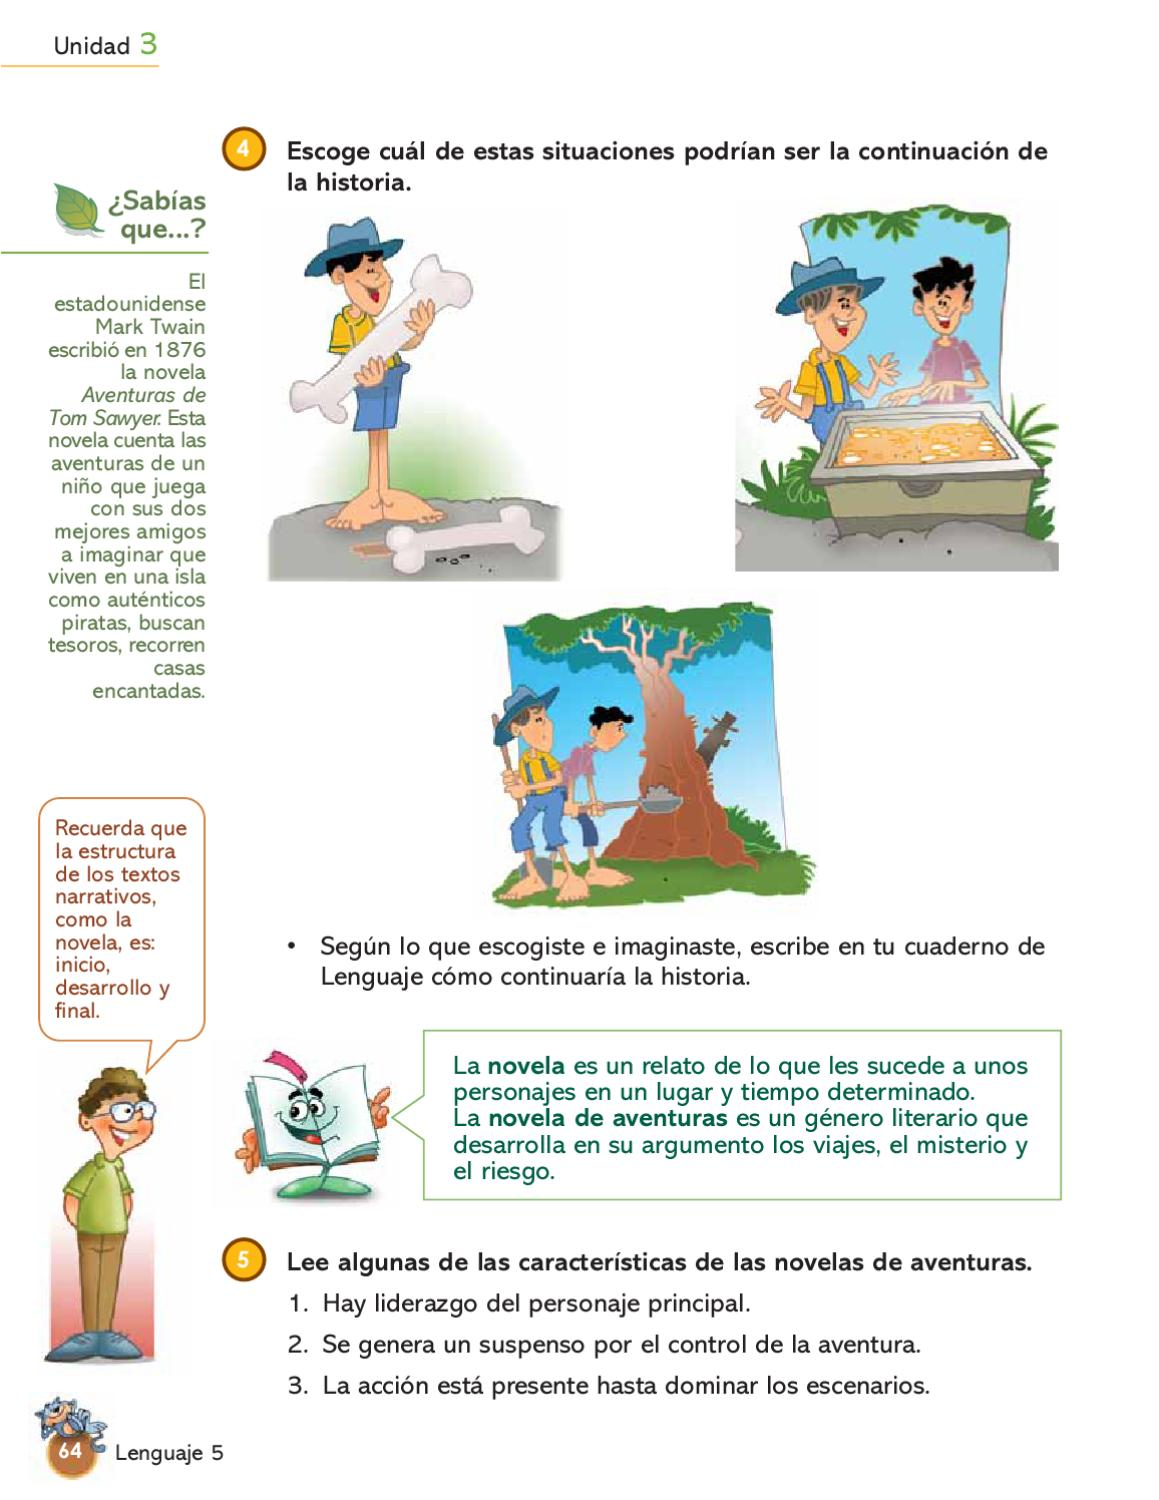 Libro De Texto 5º Grado By Trasteando Ideas Issuu